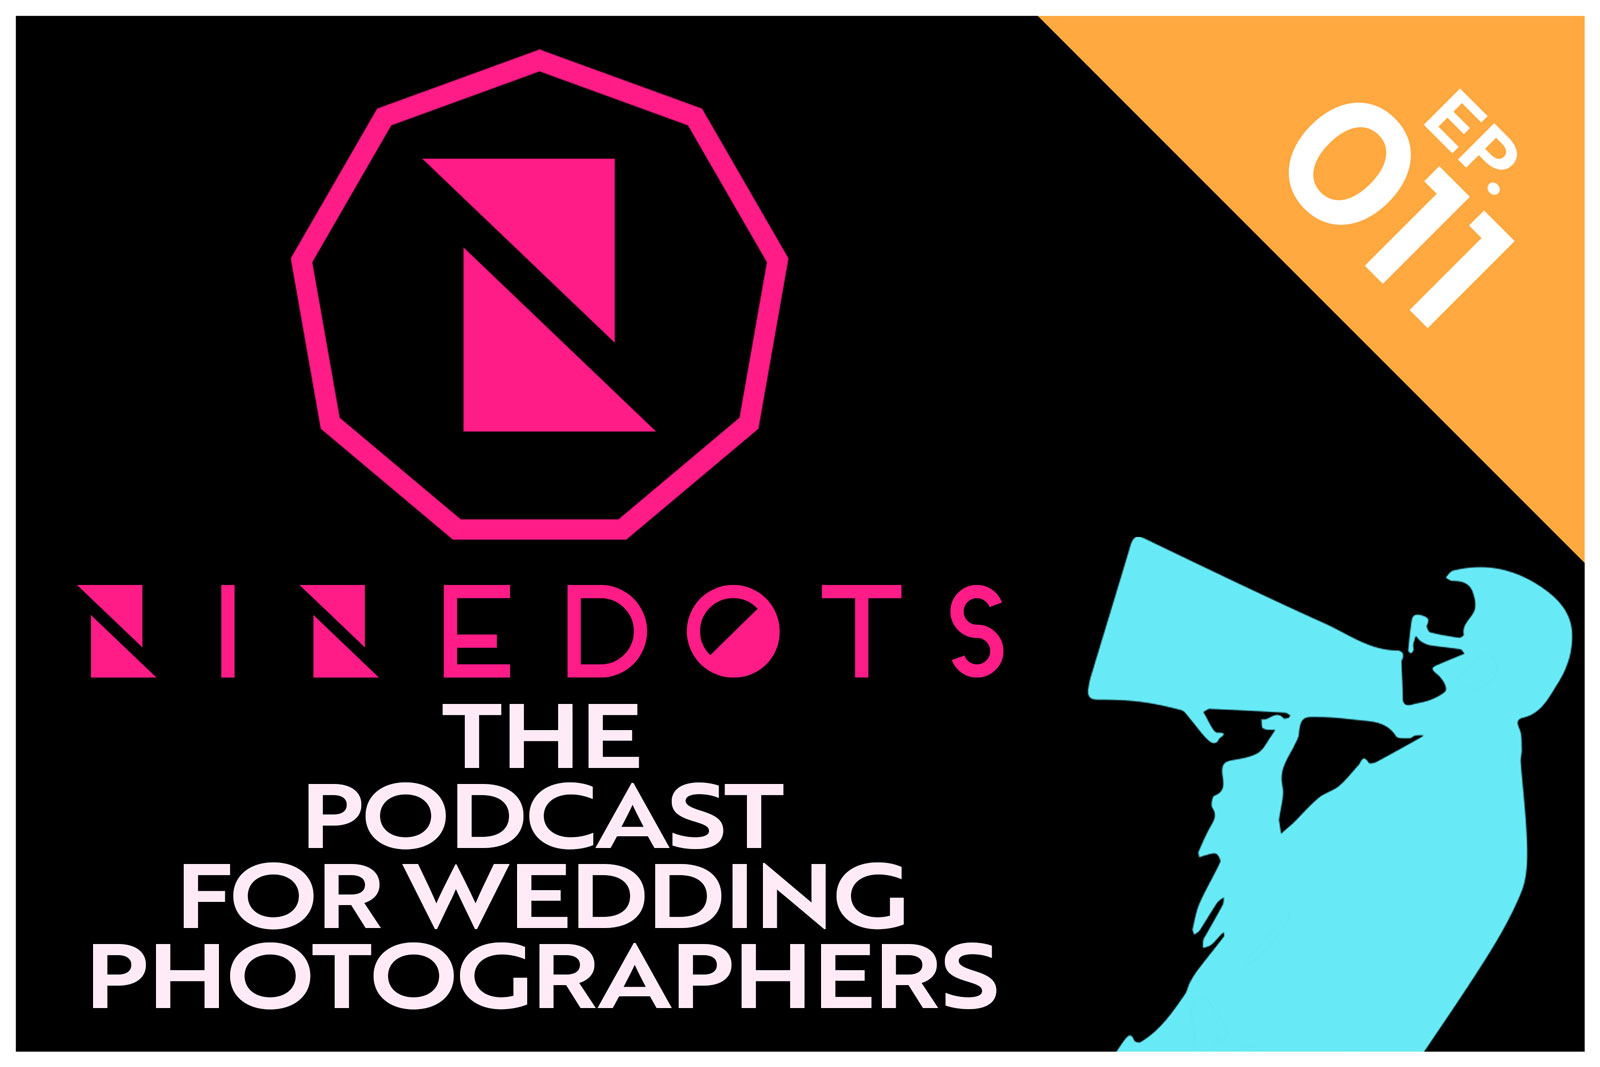 Off Camera Flash with Rocio Vega - Wedding Photography Podcast NineDots DotCast